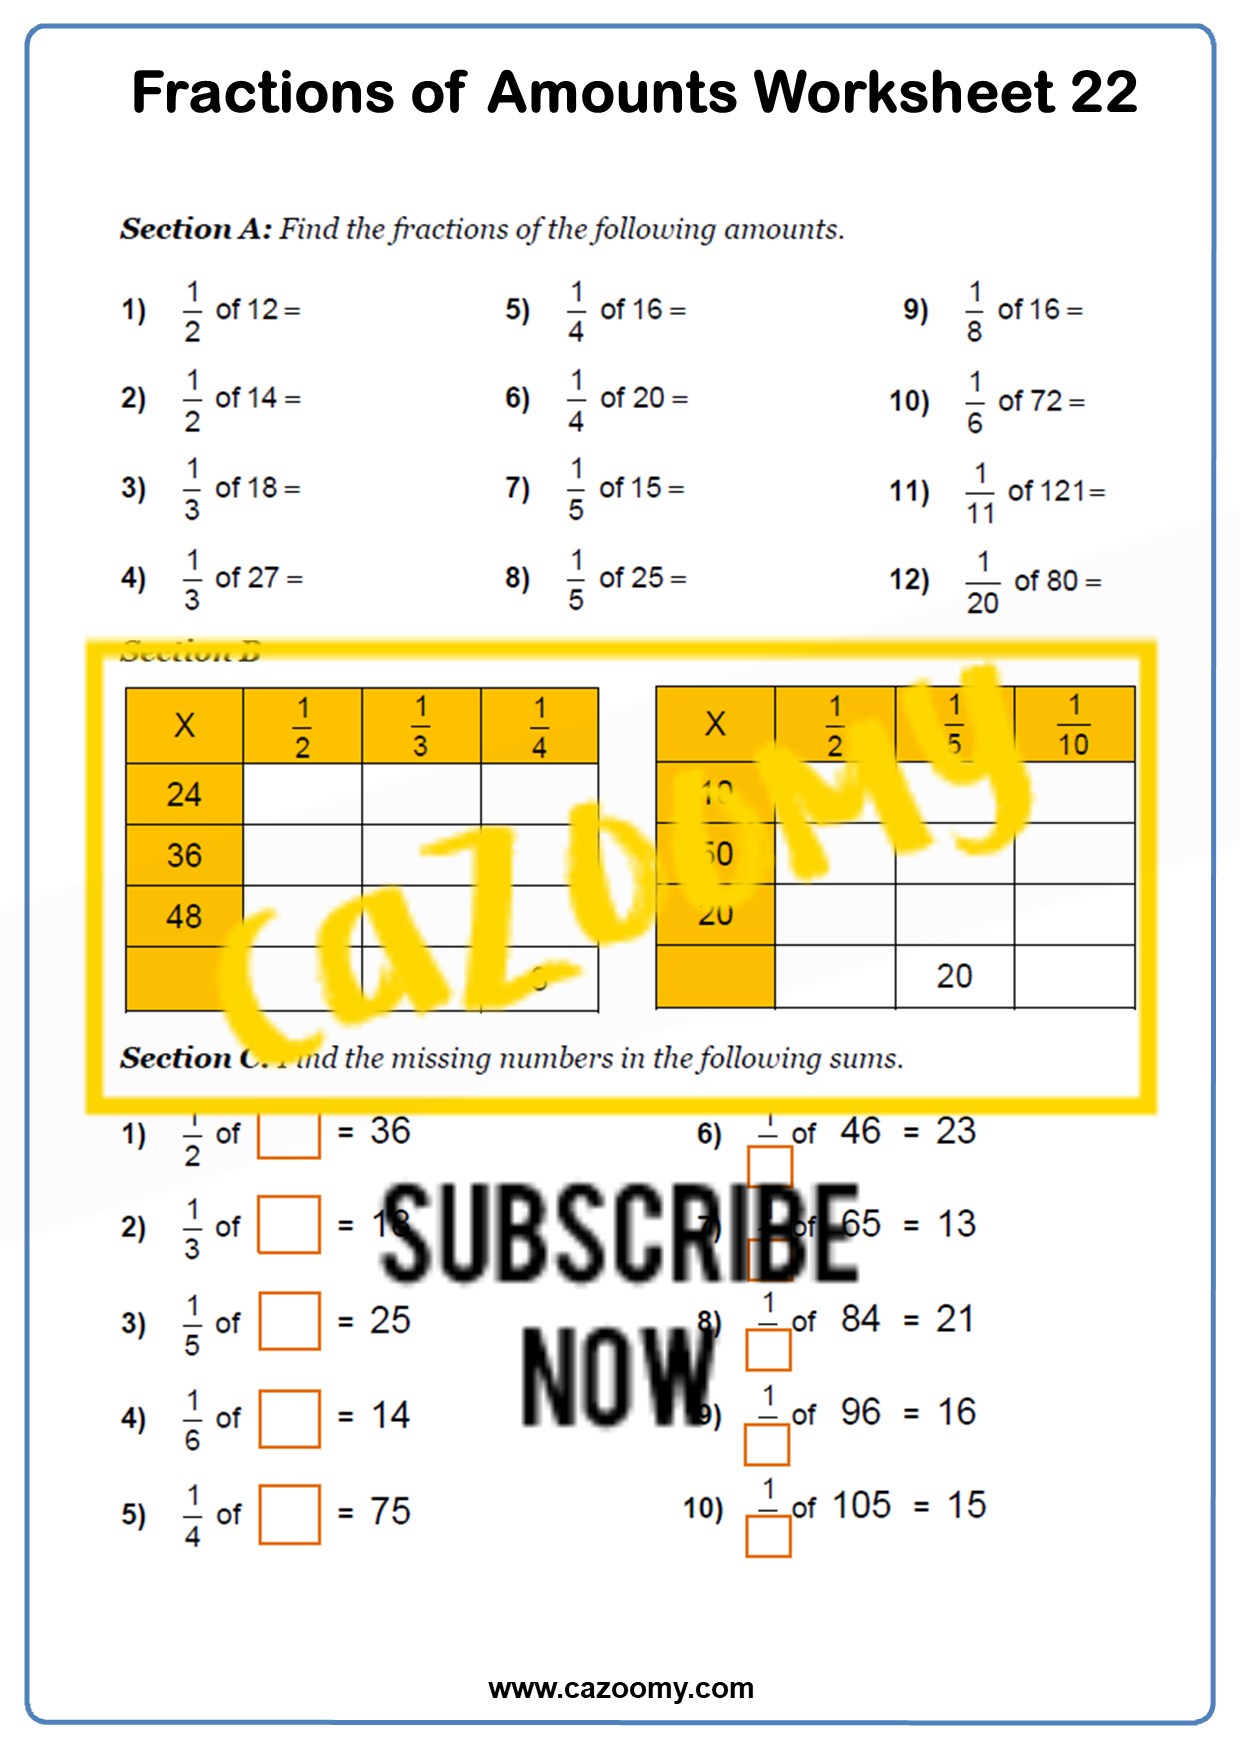 Fractions of Amounts Worksheet 1